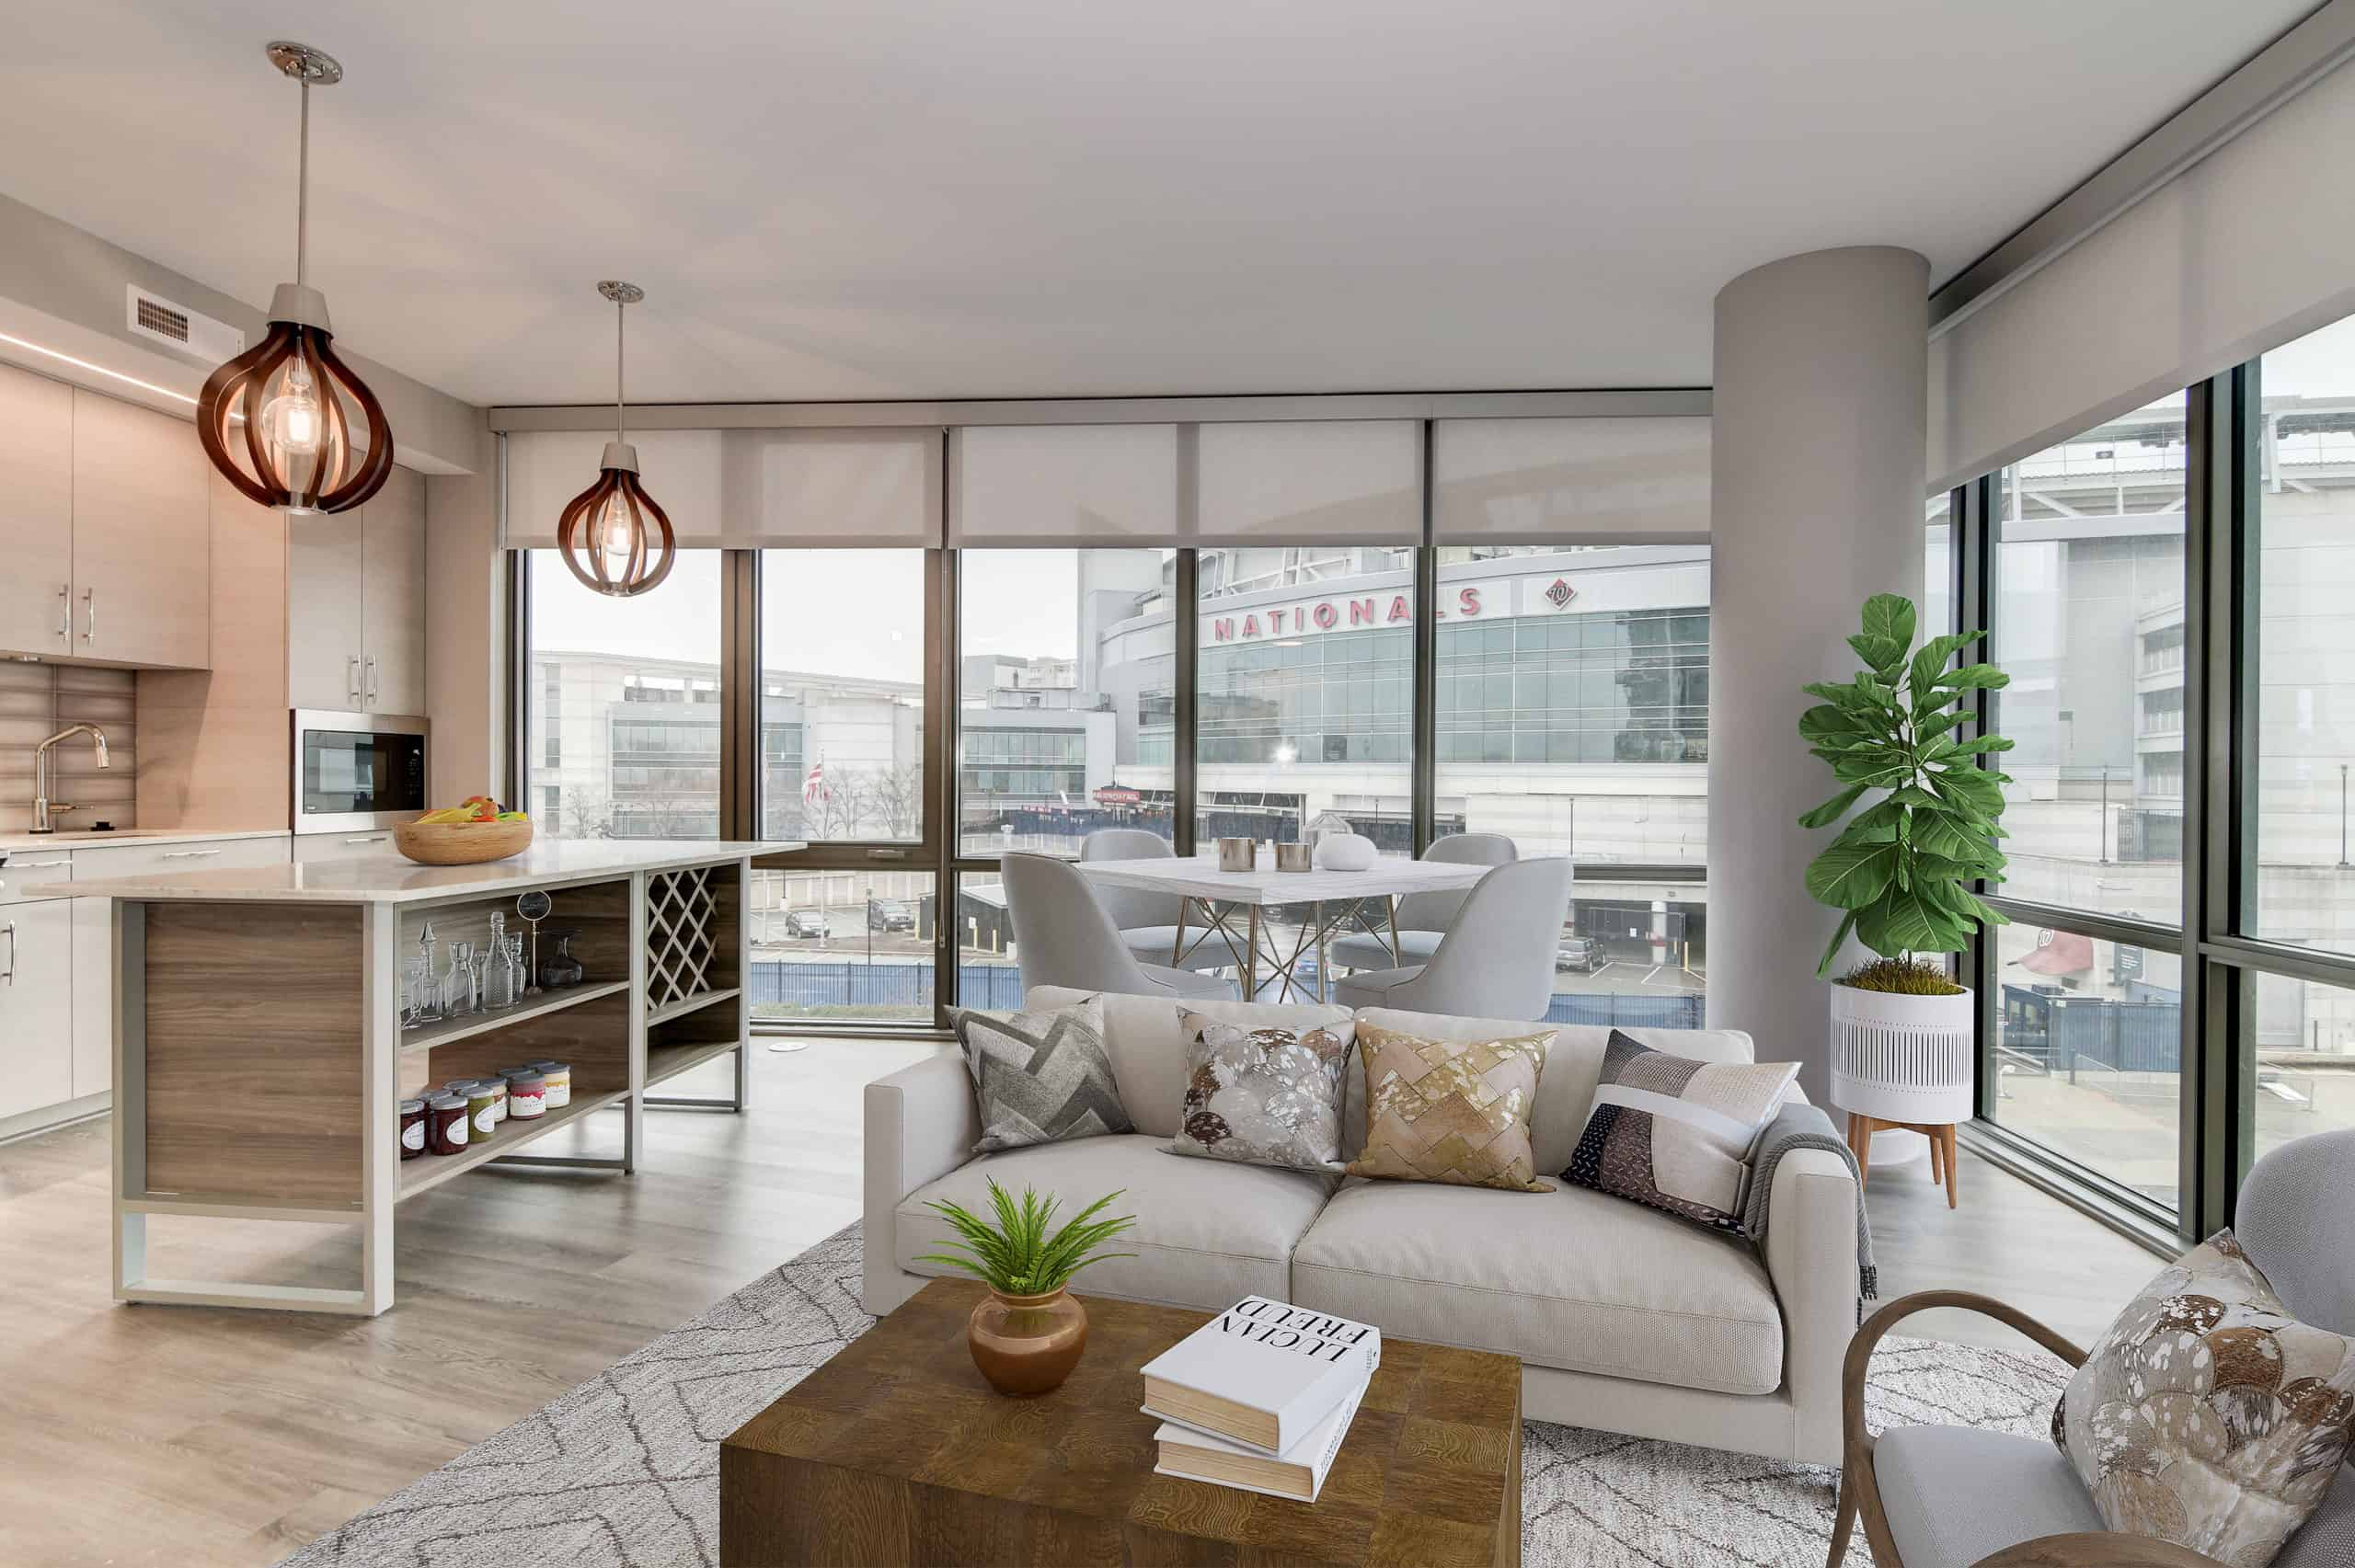 Stunning 2 bedroom apartment with direct views of Nationals Park